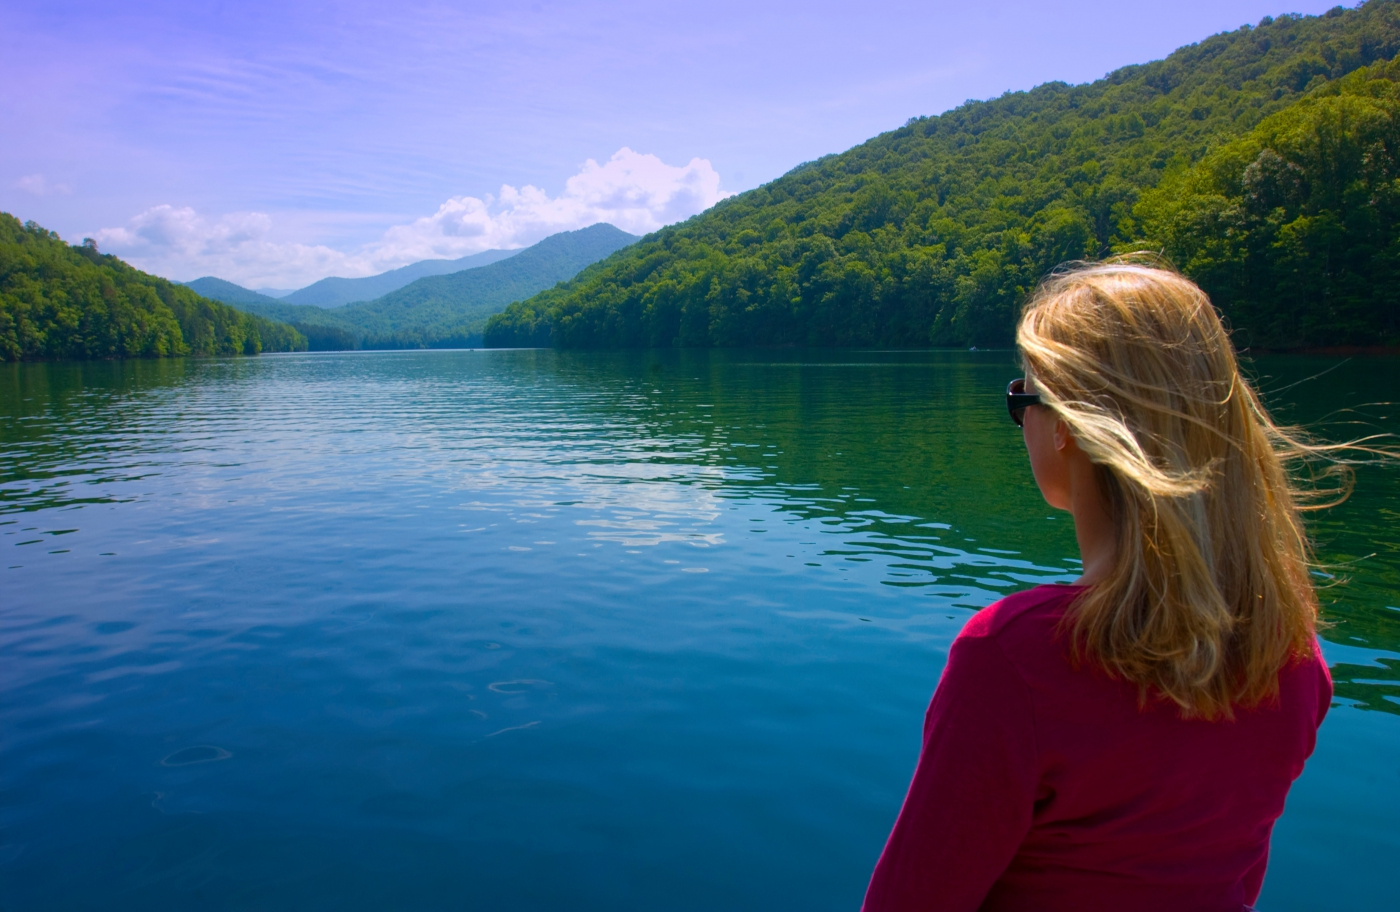 Fontana Lake - Bryson City, North Carolina (courtesy of VisitNC.com)